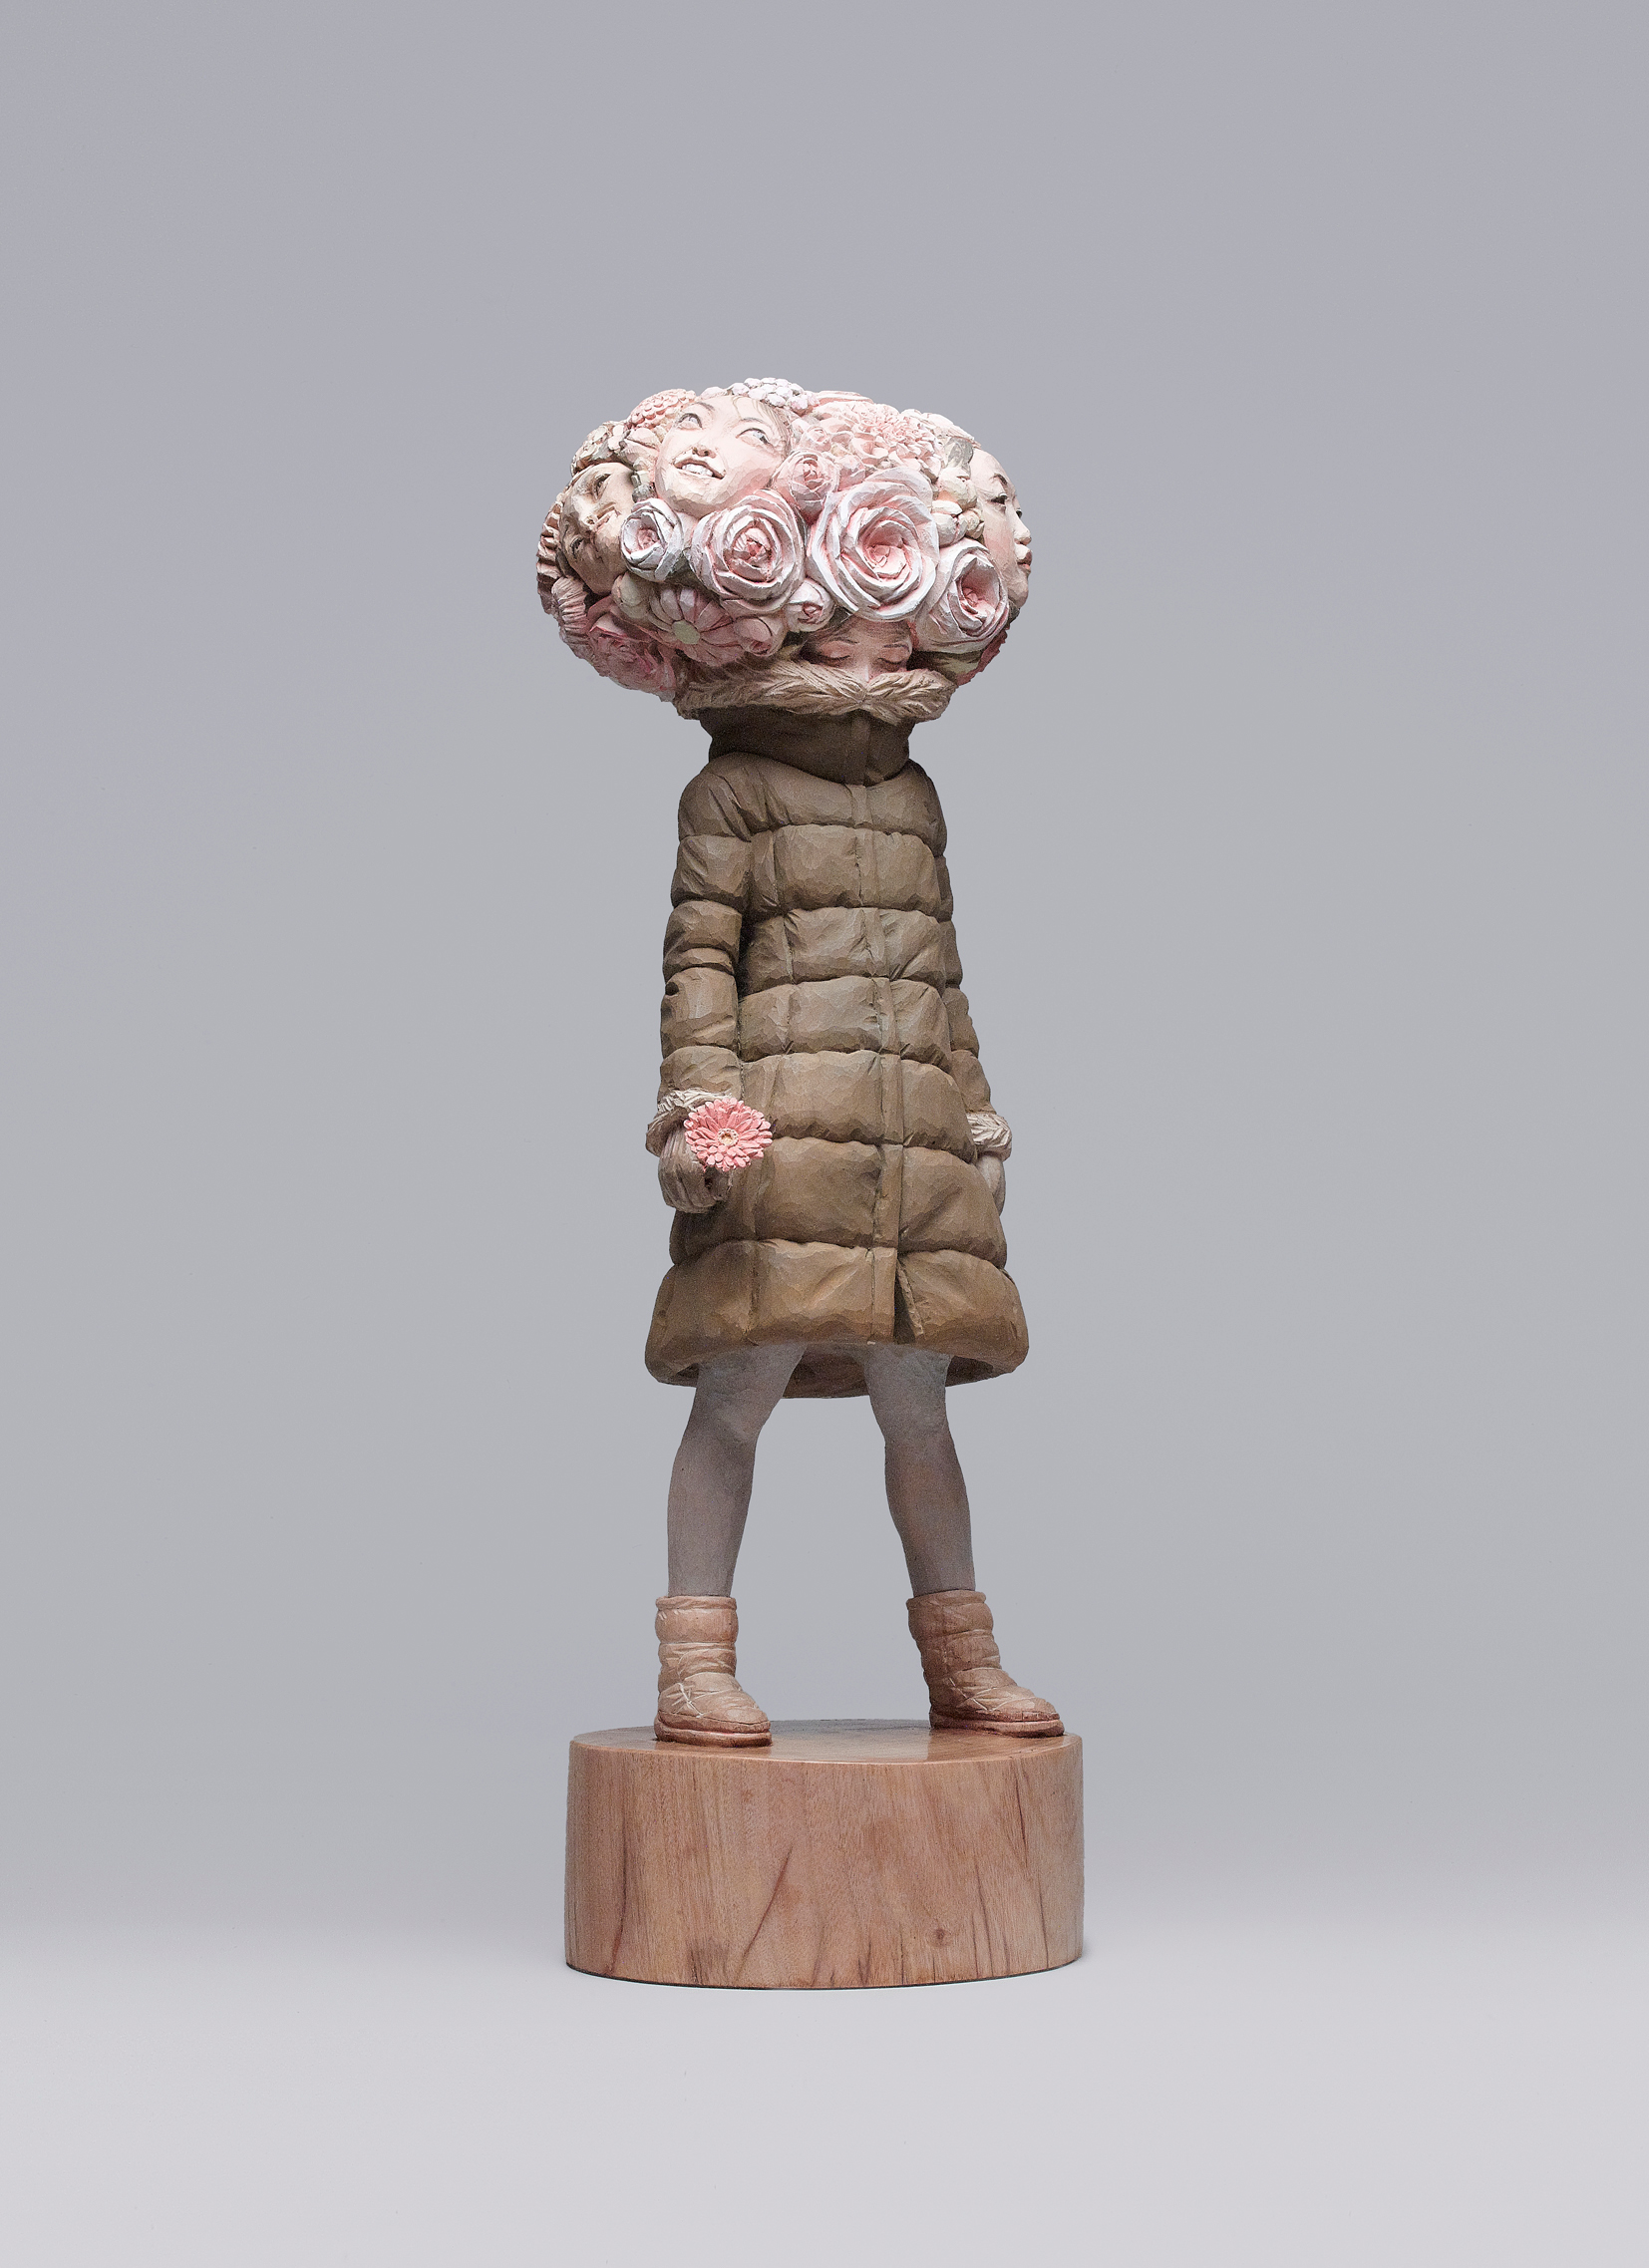 surrealist, sculpture, art, contemporaryart